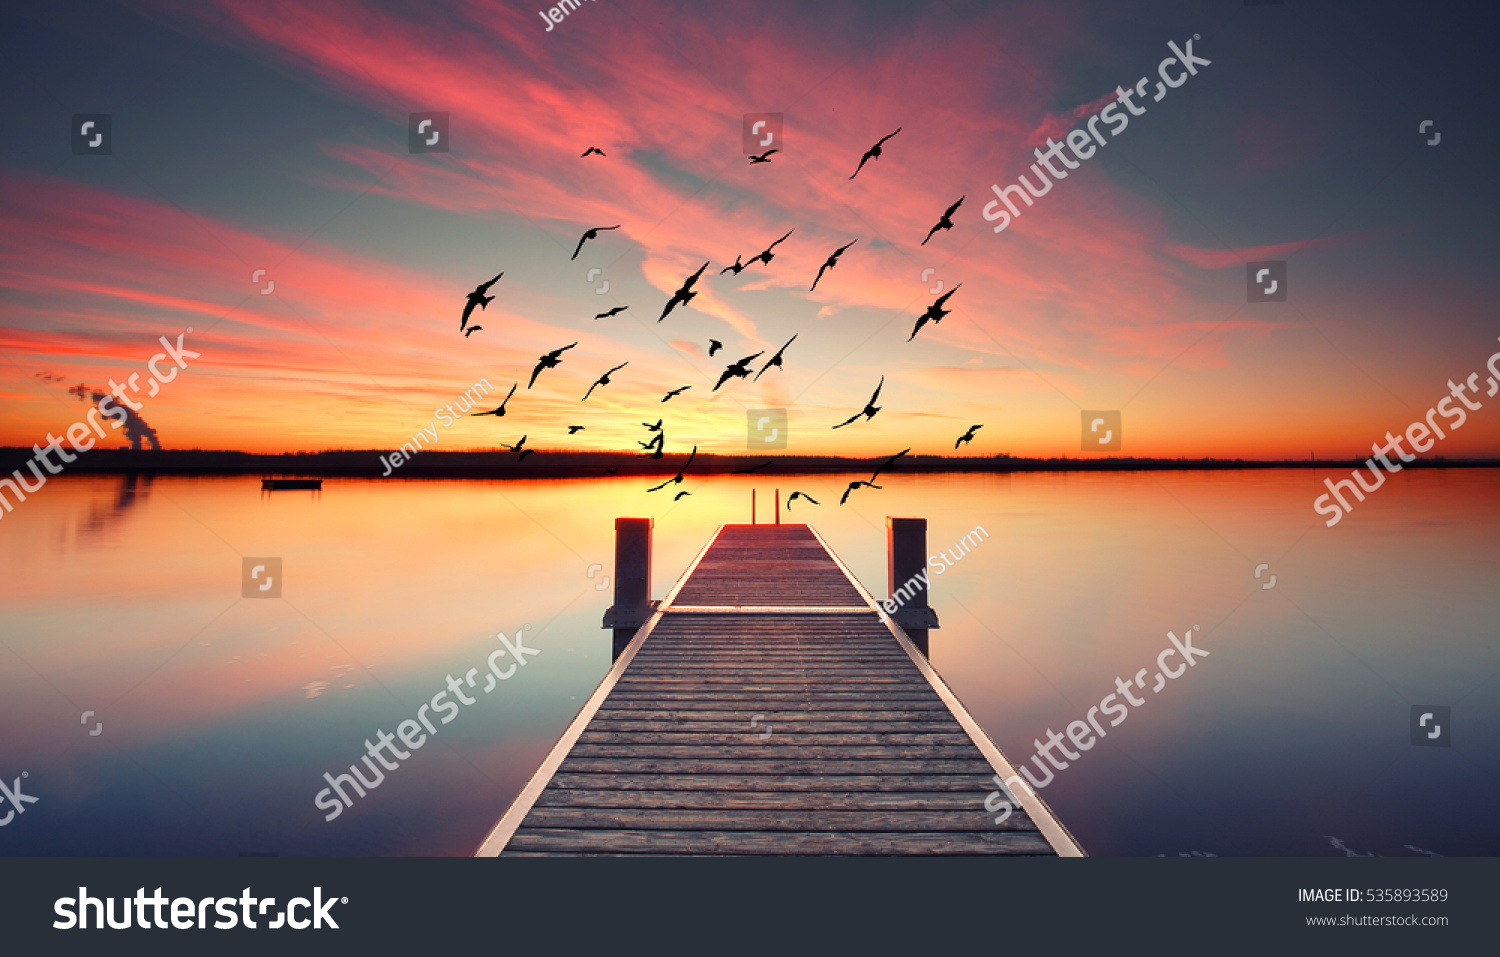 Perspective view of a wooden pier on the pond at sunset with perfectly specular reflection #535893589